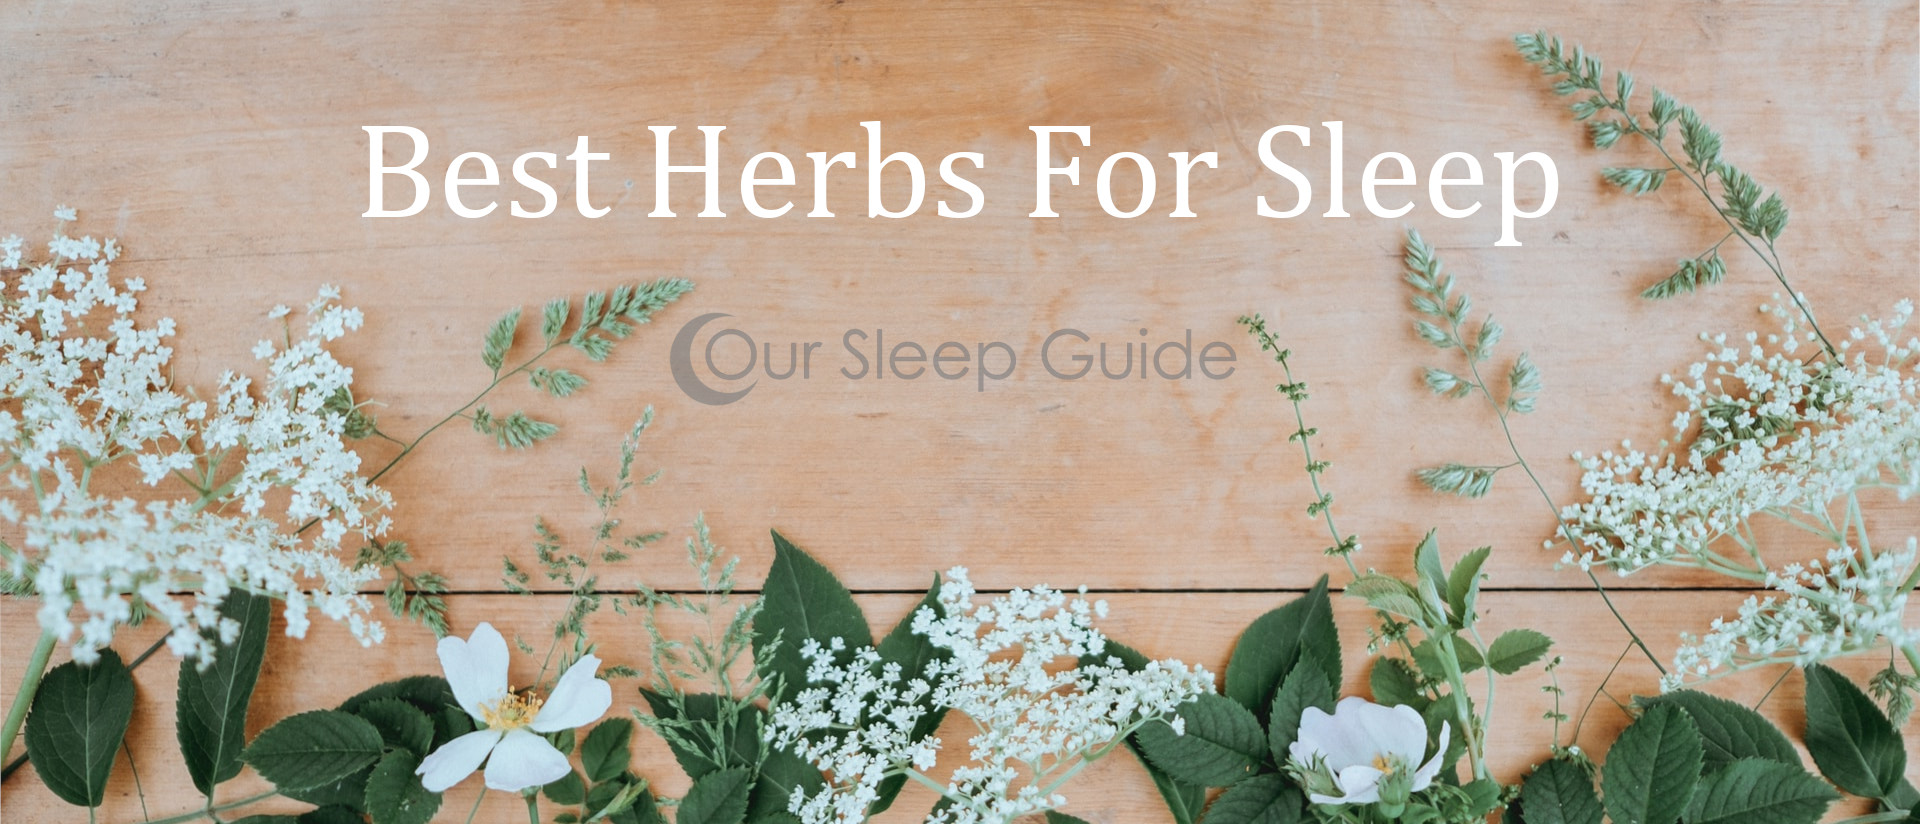 Best Herbs For Sleep